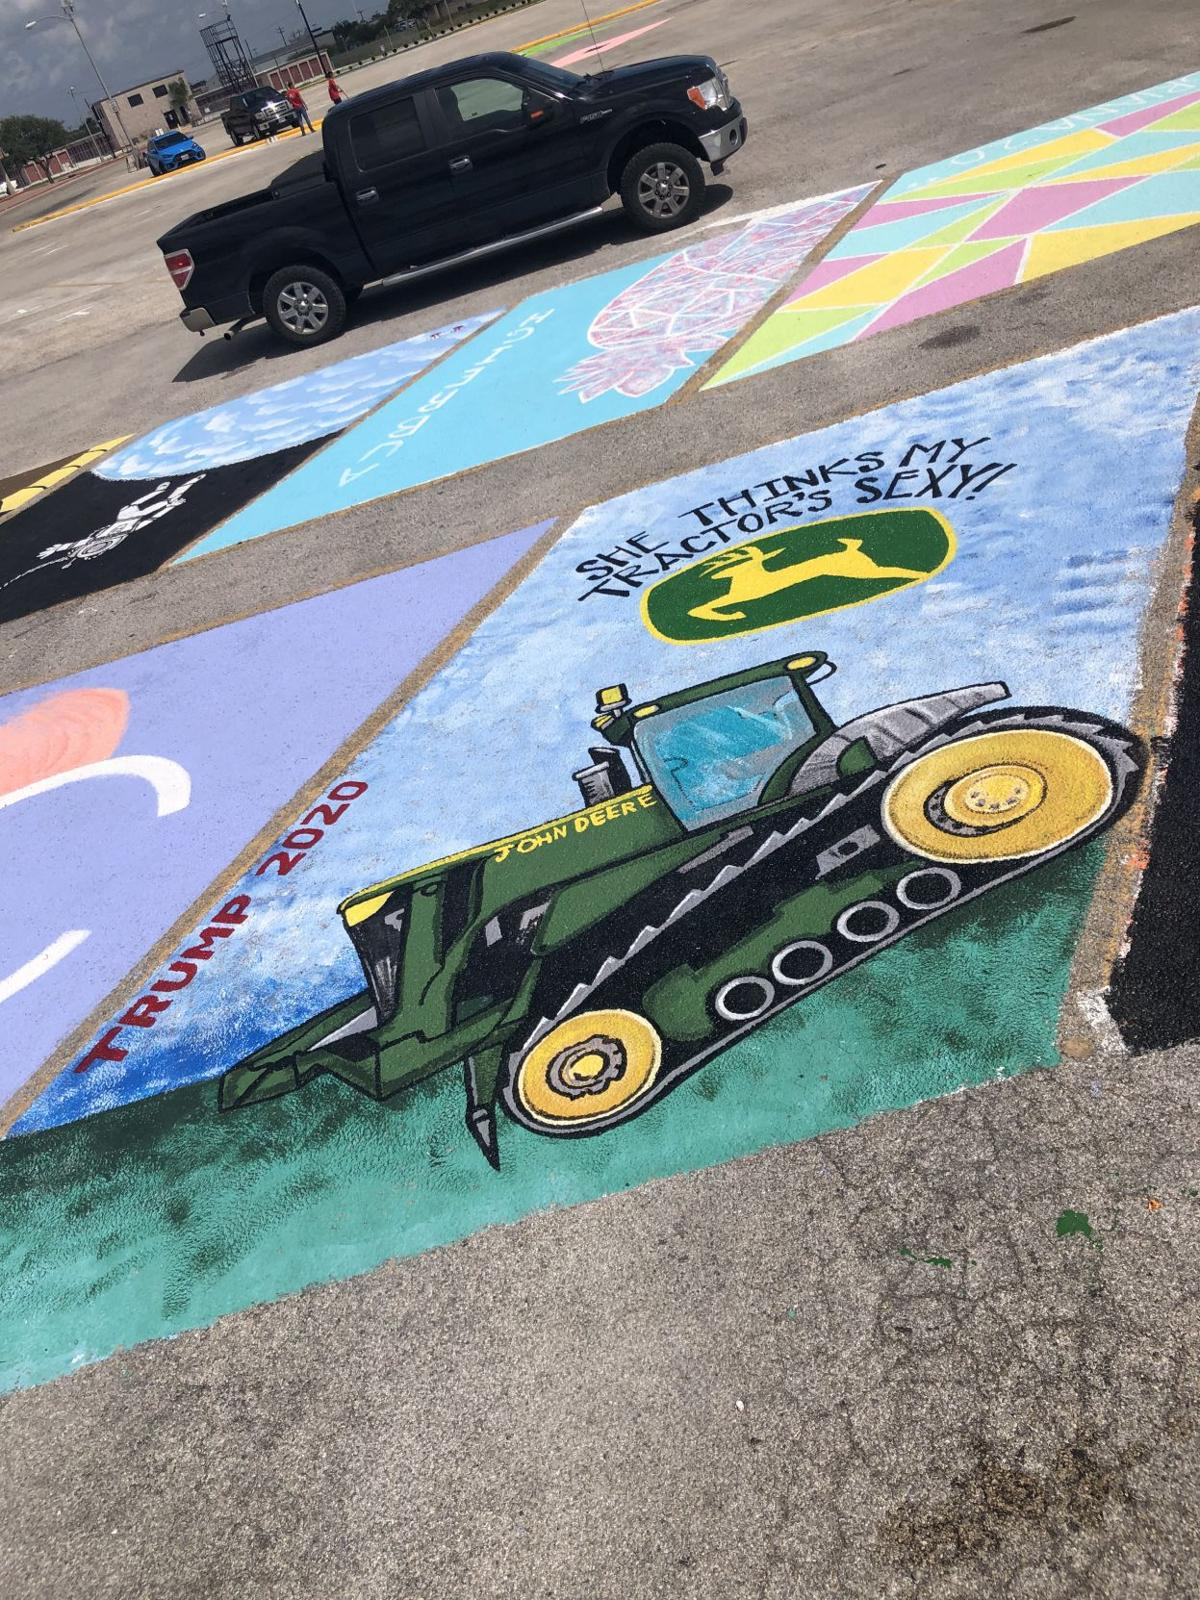 Calhoun student asked to paint over political message on school parking spot